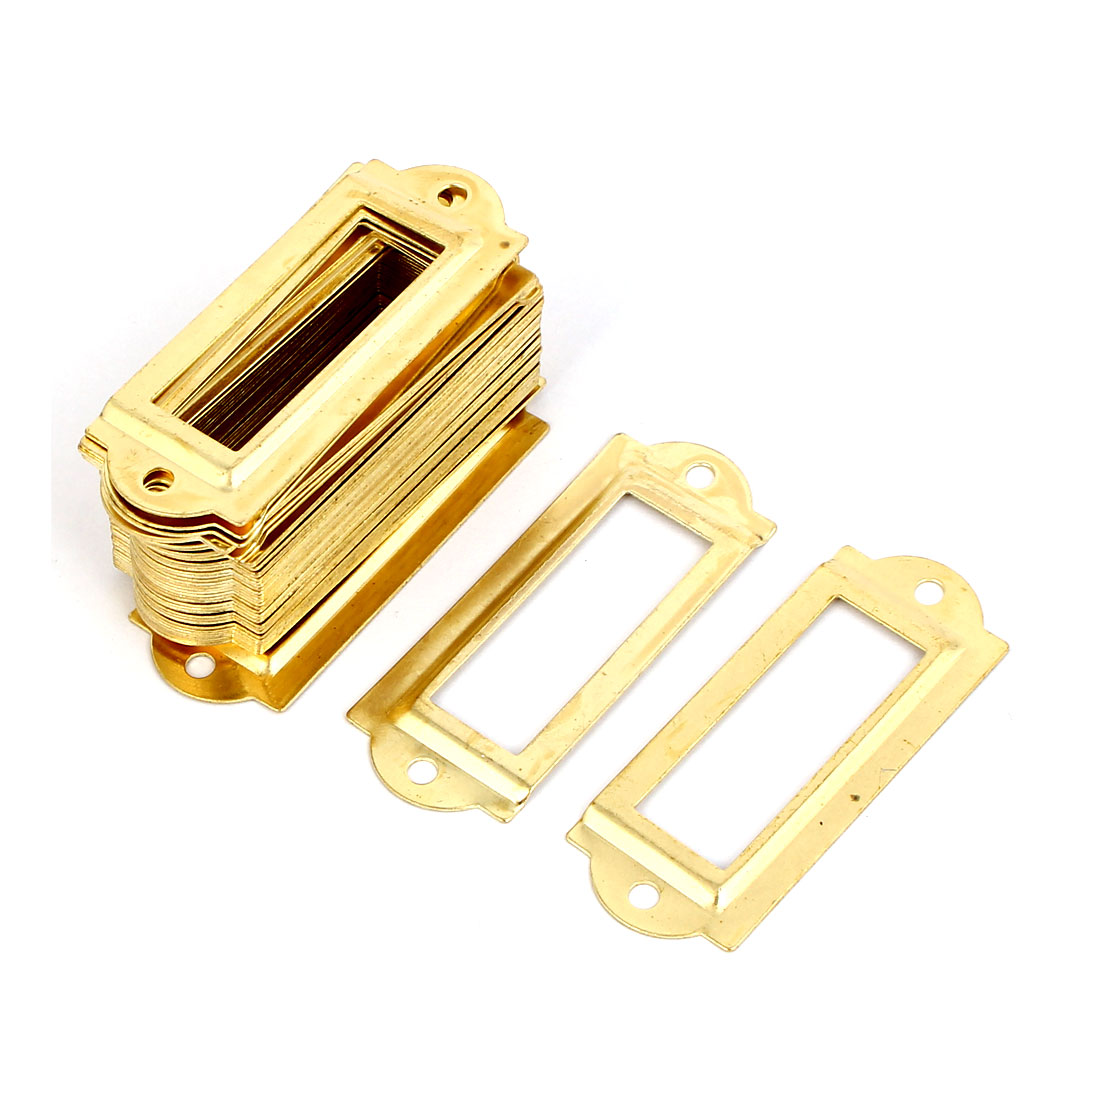 Post Office File Drawer Label Tag Name Card Holder Gold Tone 50pcs